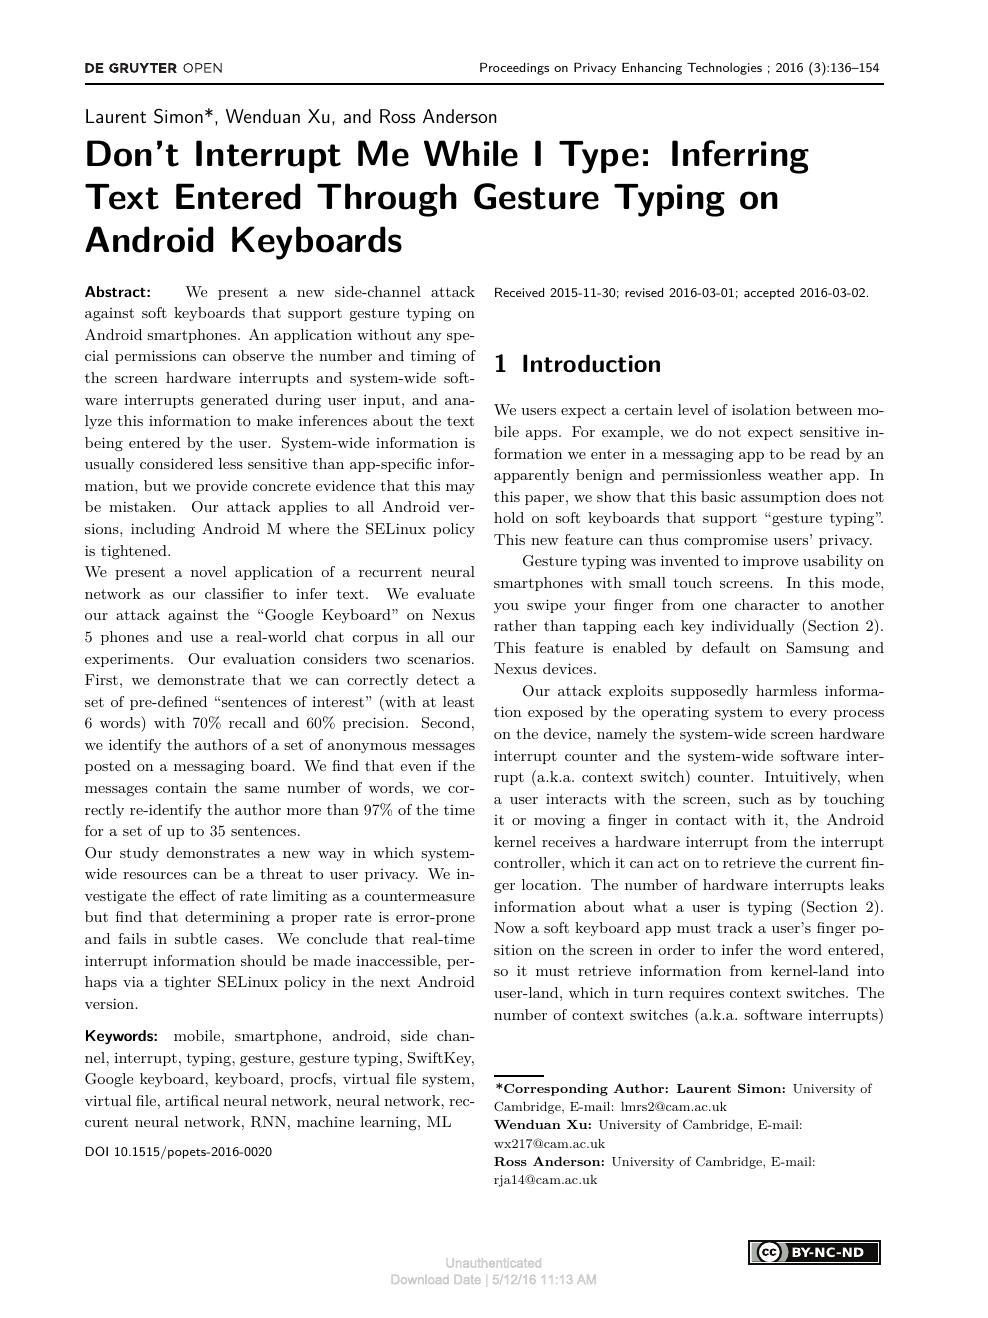 Don't Interrupt Me While I Type: Inferring Text Entered Through